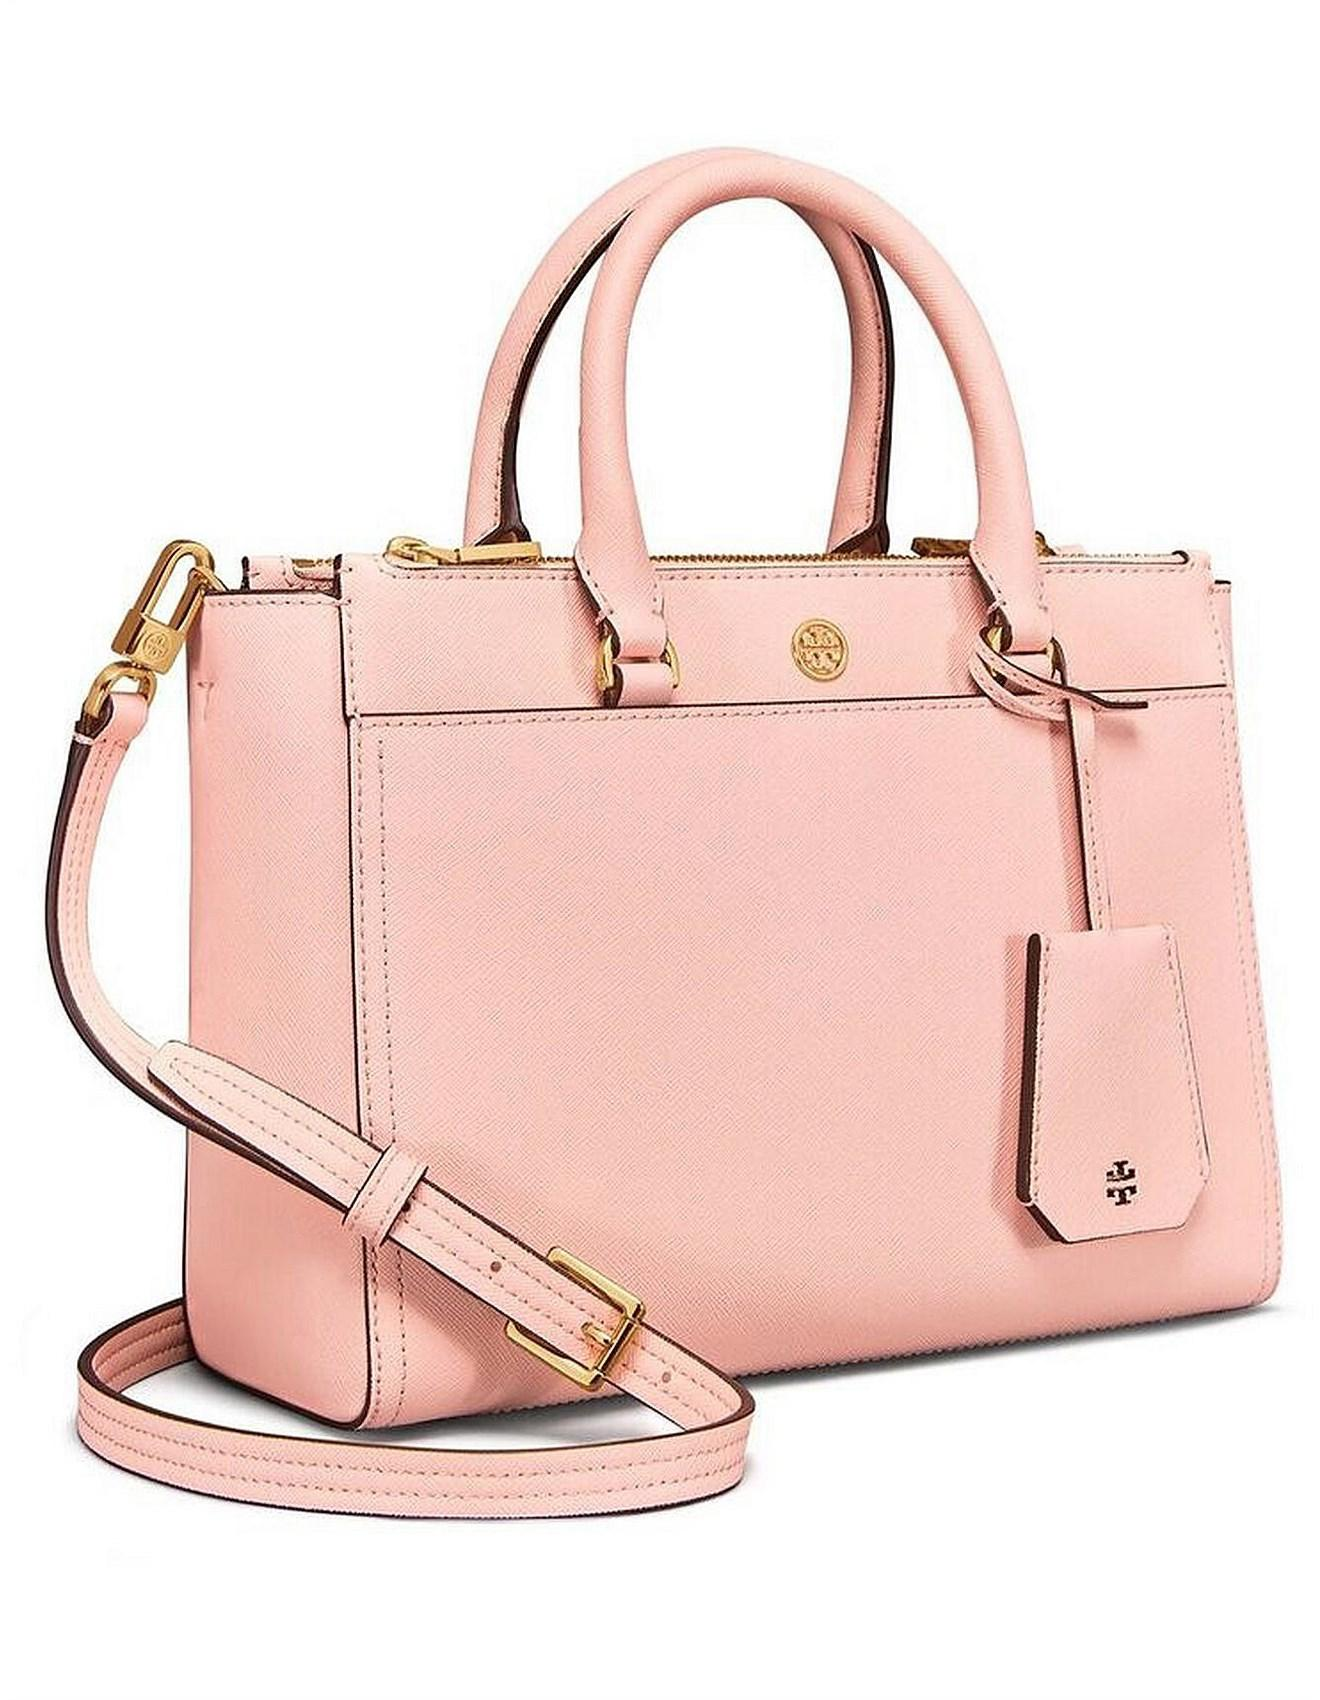 d032dc43b2c3 Tory Burch Robinson Small Double Zip Tote in Pink - Save 54% - Lyst